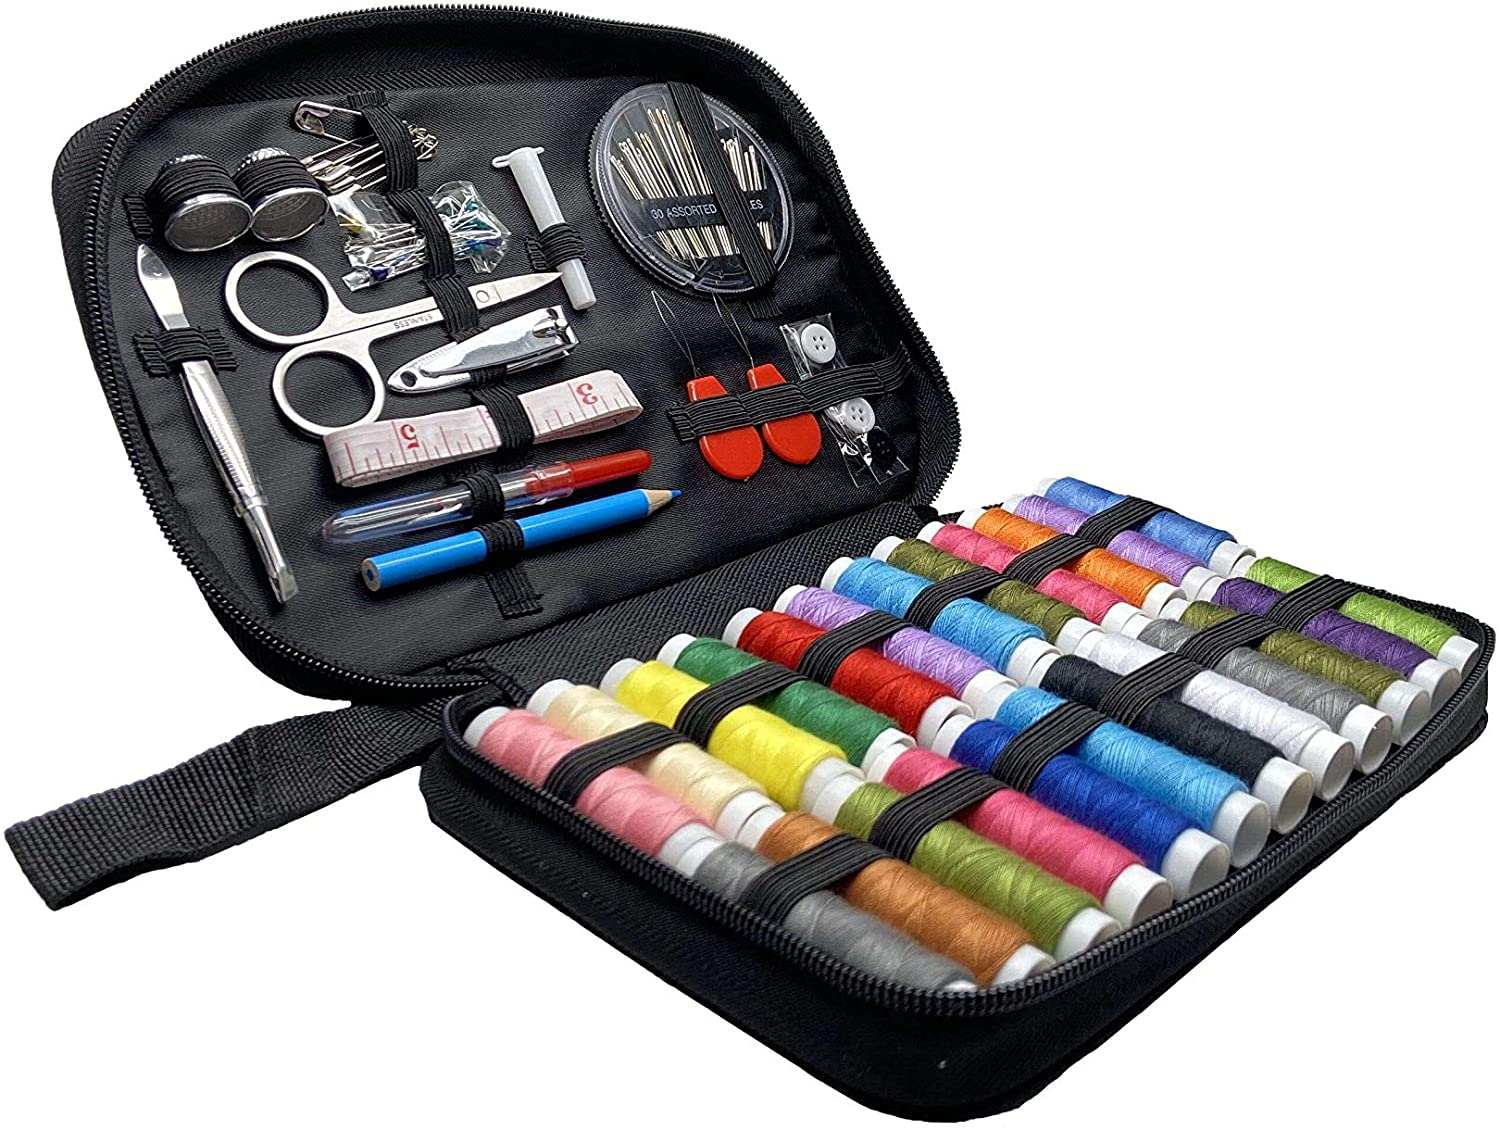 HNXAZG Sewing Kit,86 DIY Sewing Accessories,Portable Supplies with Sewing, 24 Colors of Sewing Thread, 40 Sewing pins, Sewing Kits for Adults, Travel Sewing Kit for with